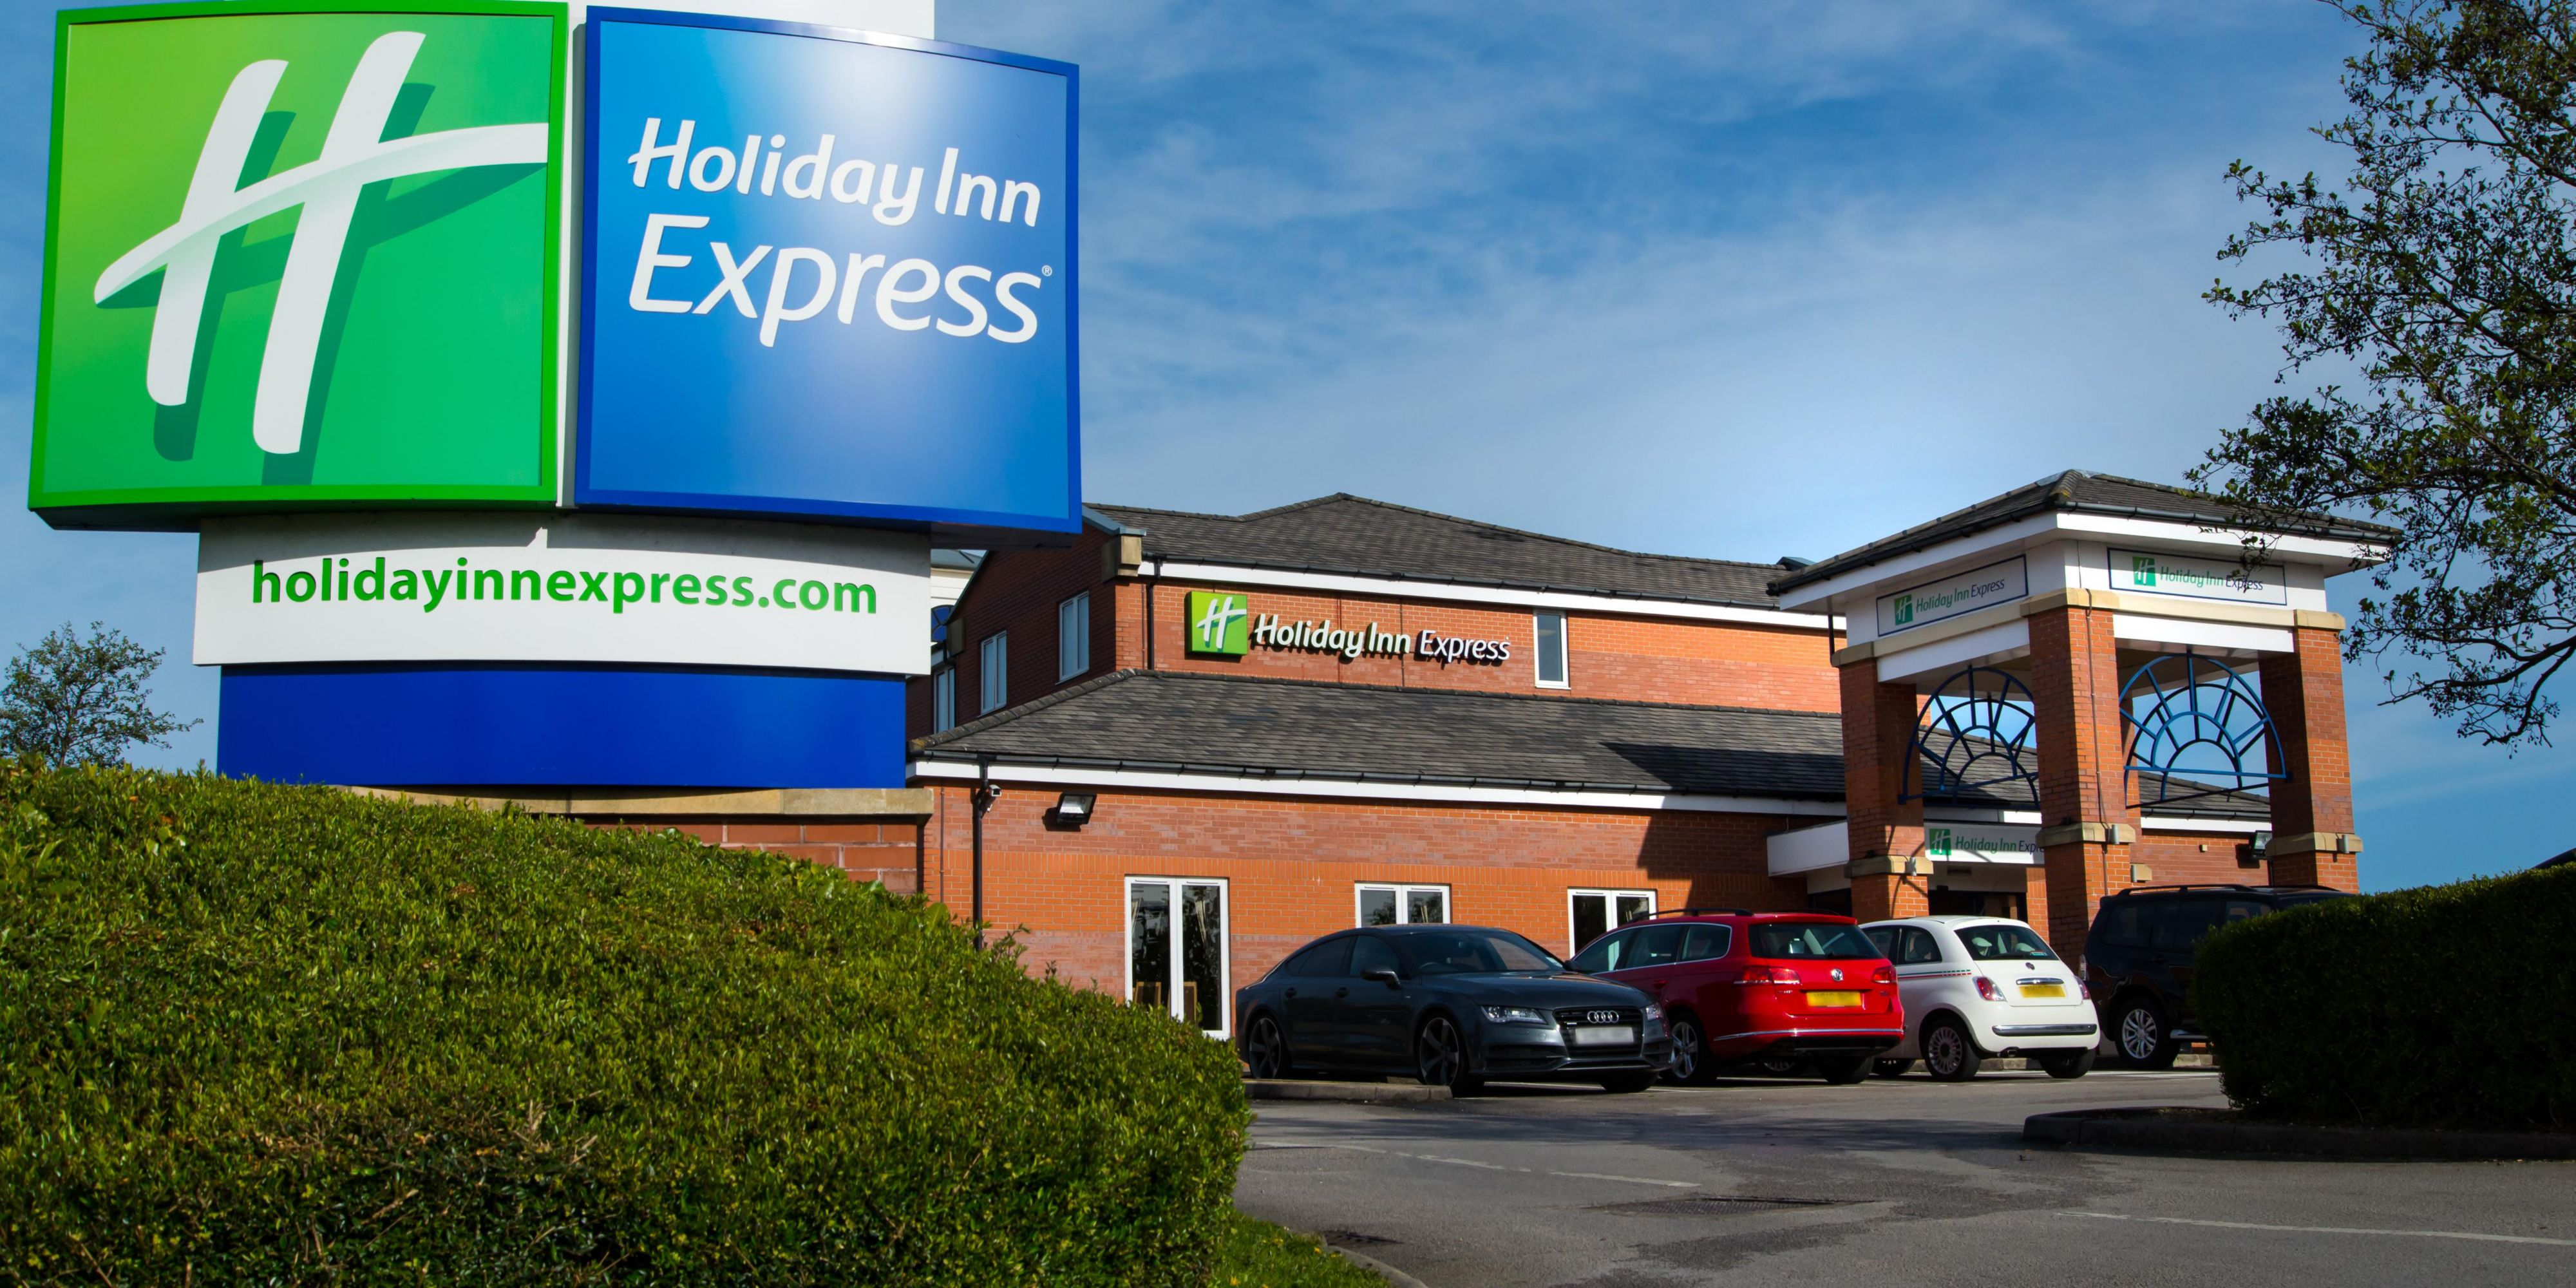 holiday-inn-express-manchester-3866819482-2x1